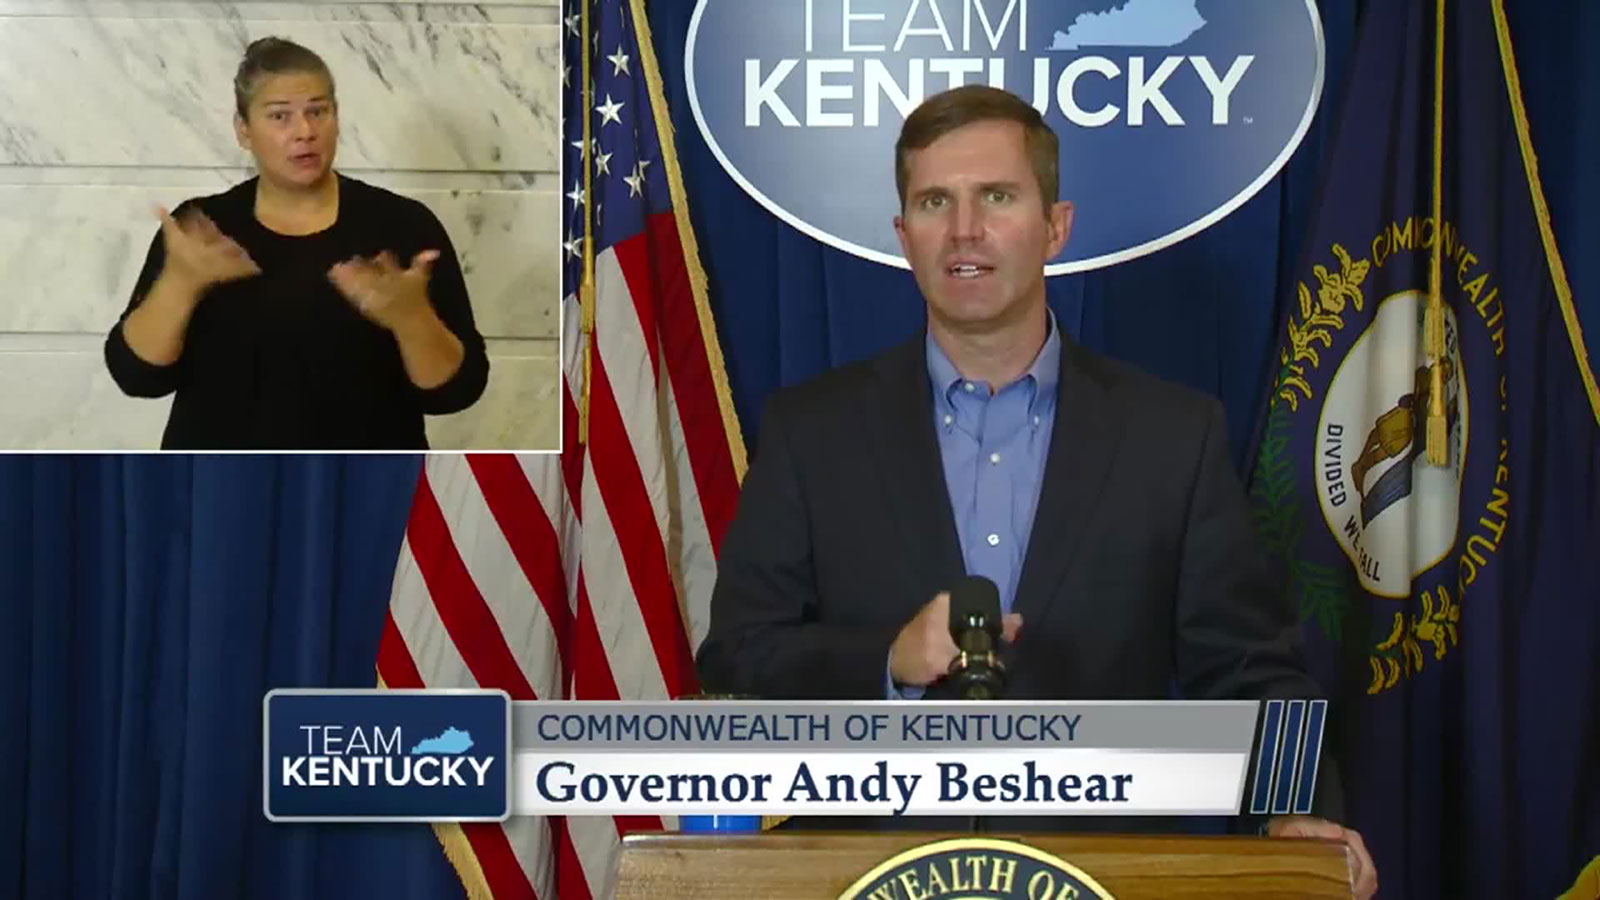 Kentucky Gov. Andy Beshear speaks at a news conference on Wednesday, August 12.